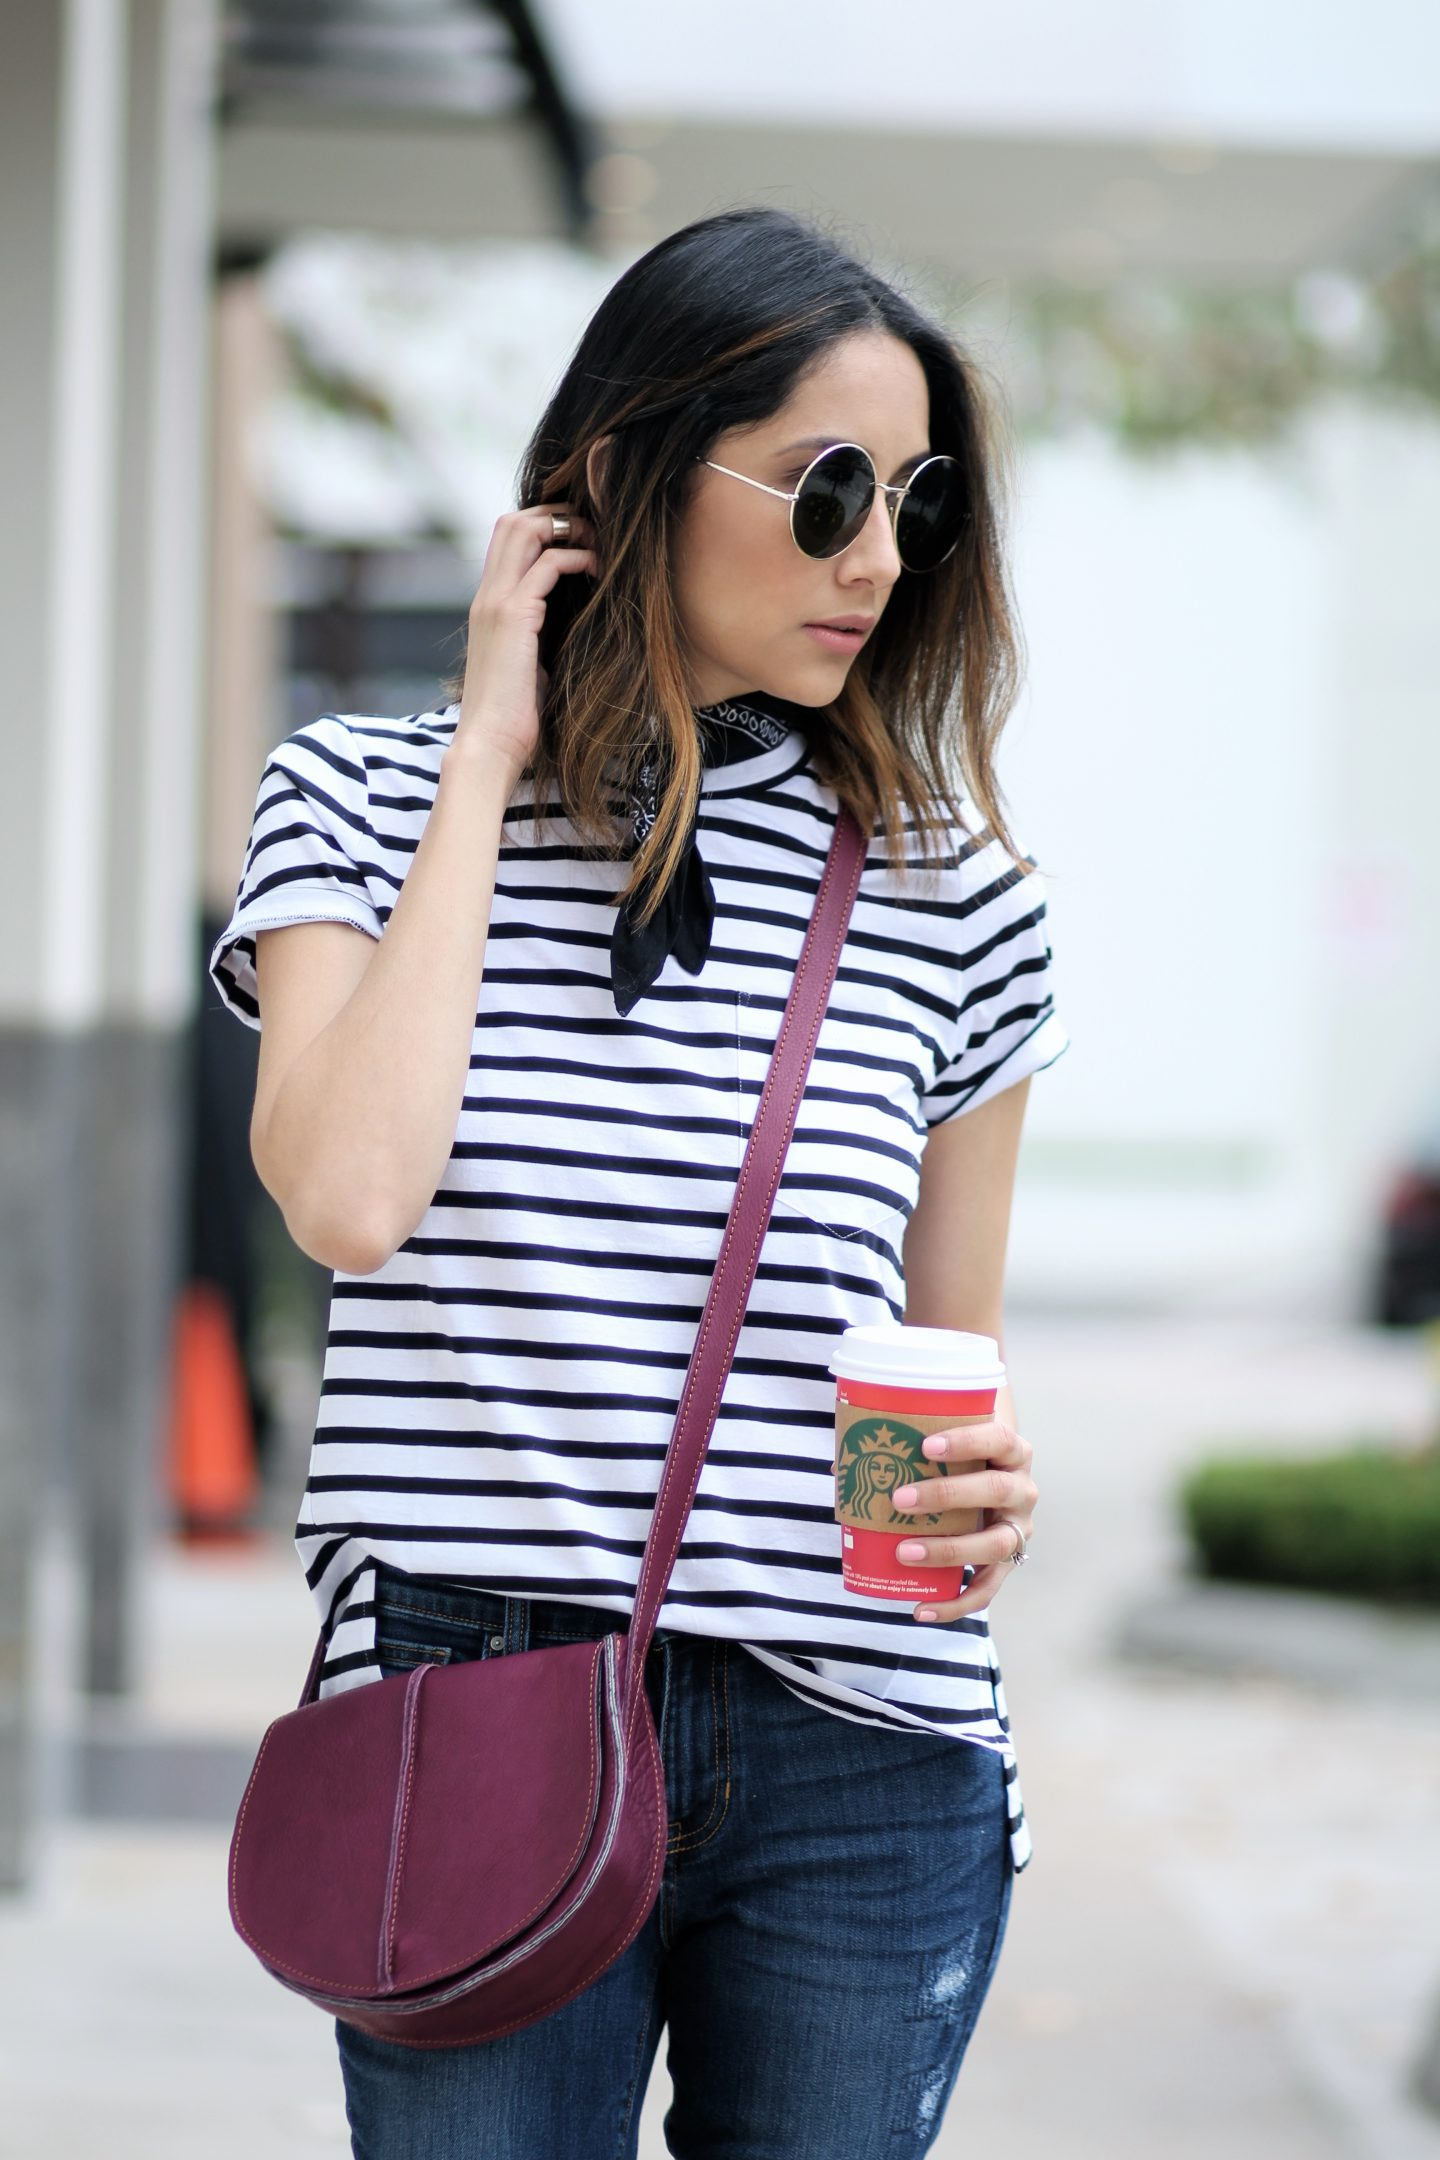 a casual chic outfit finished with a leather saddle bag